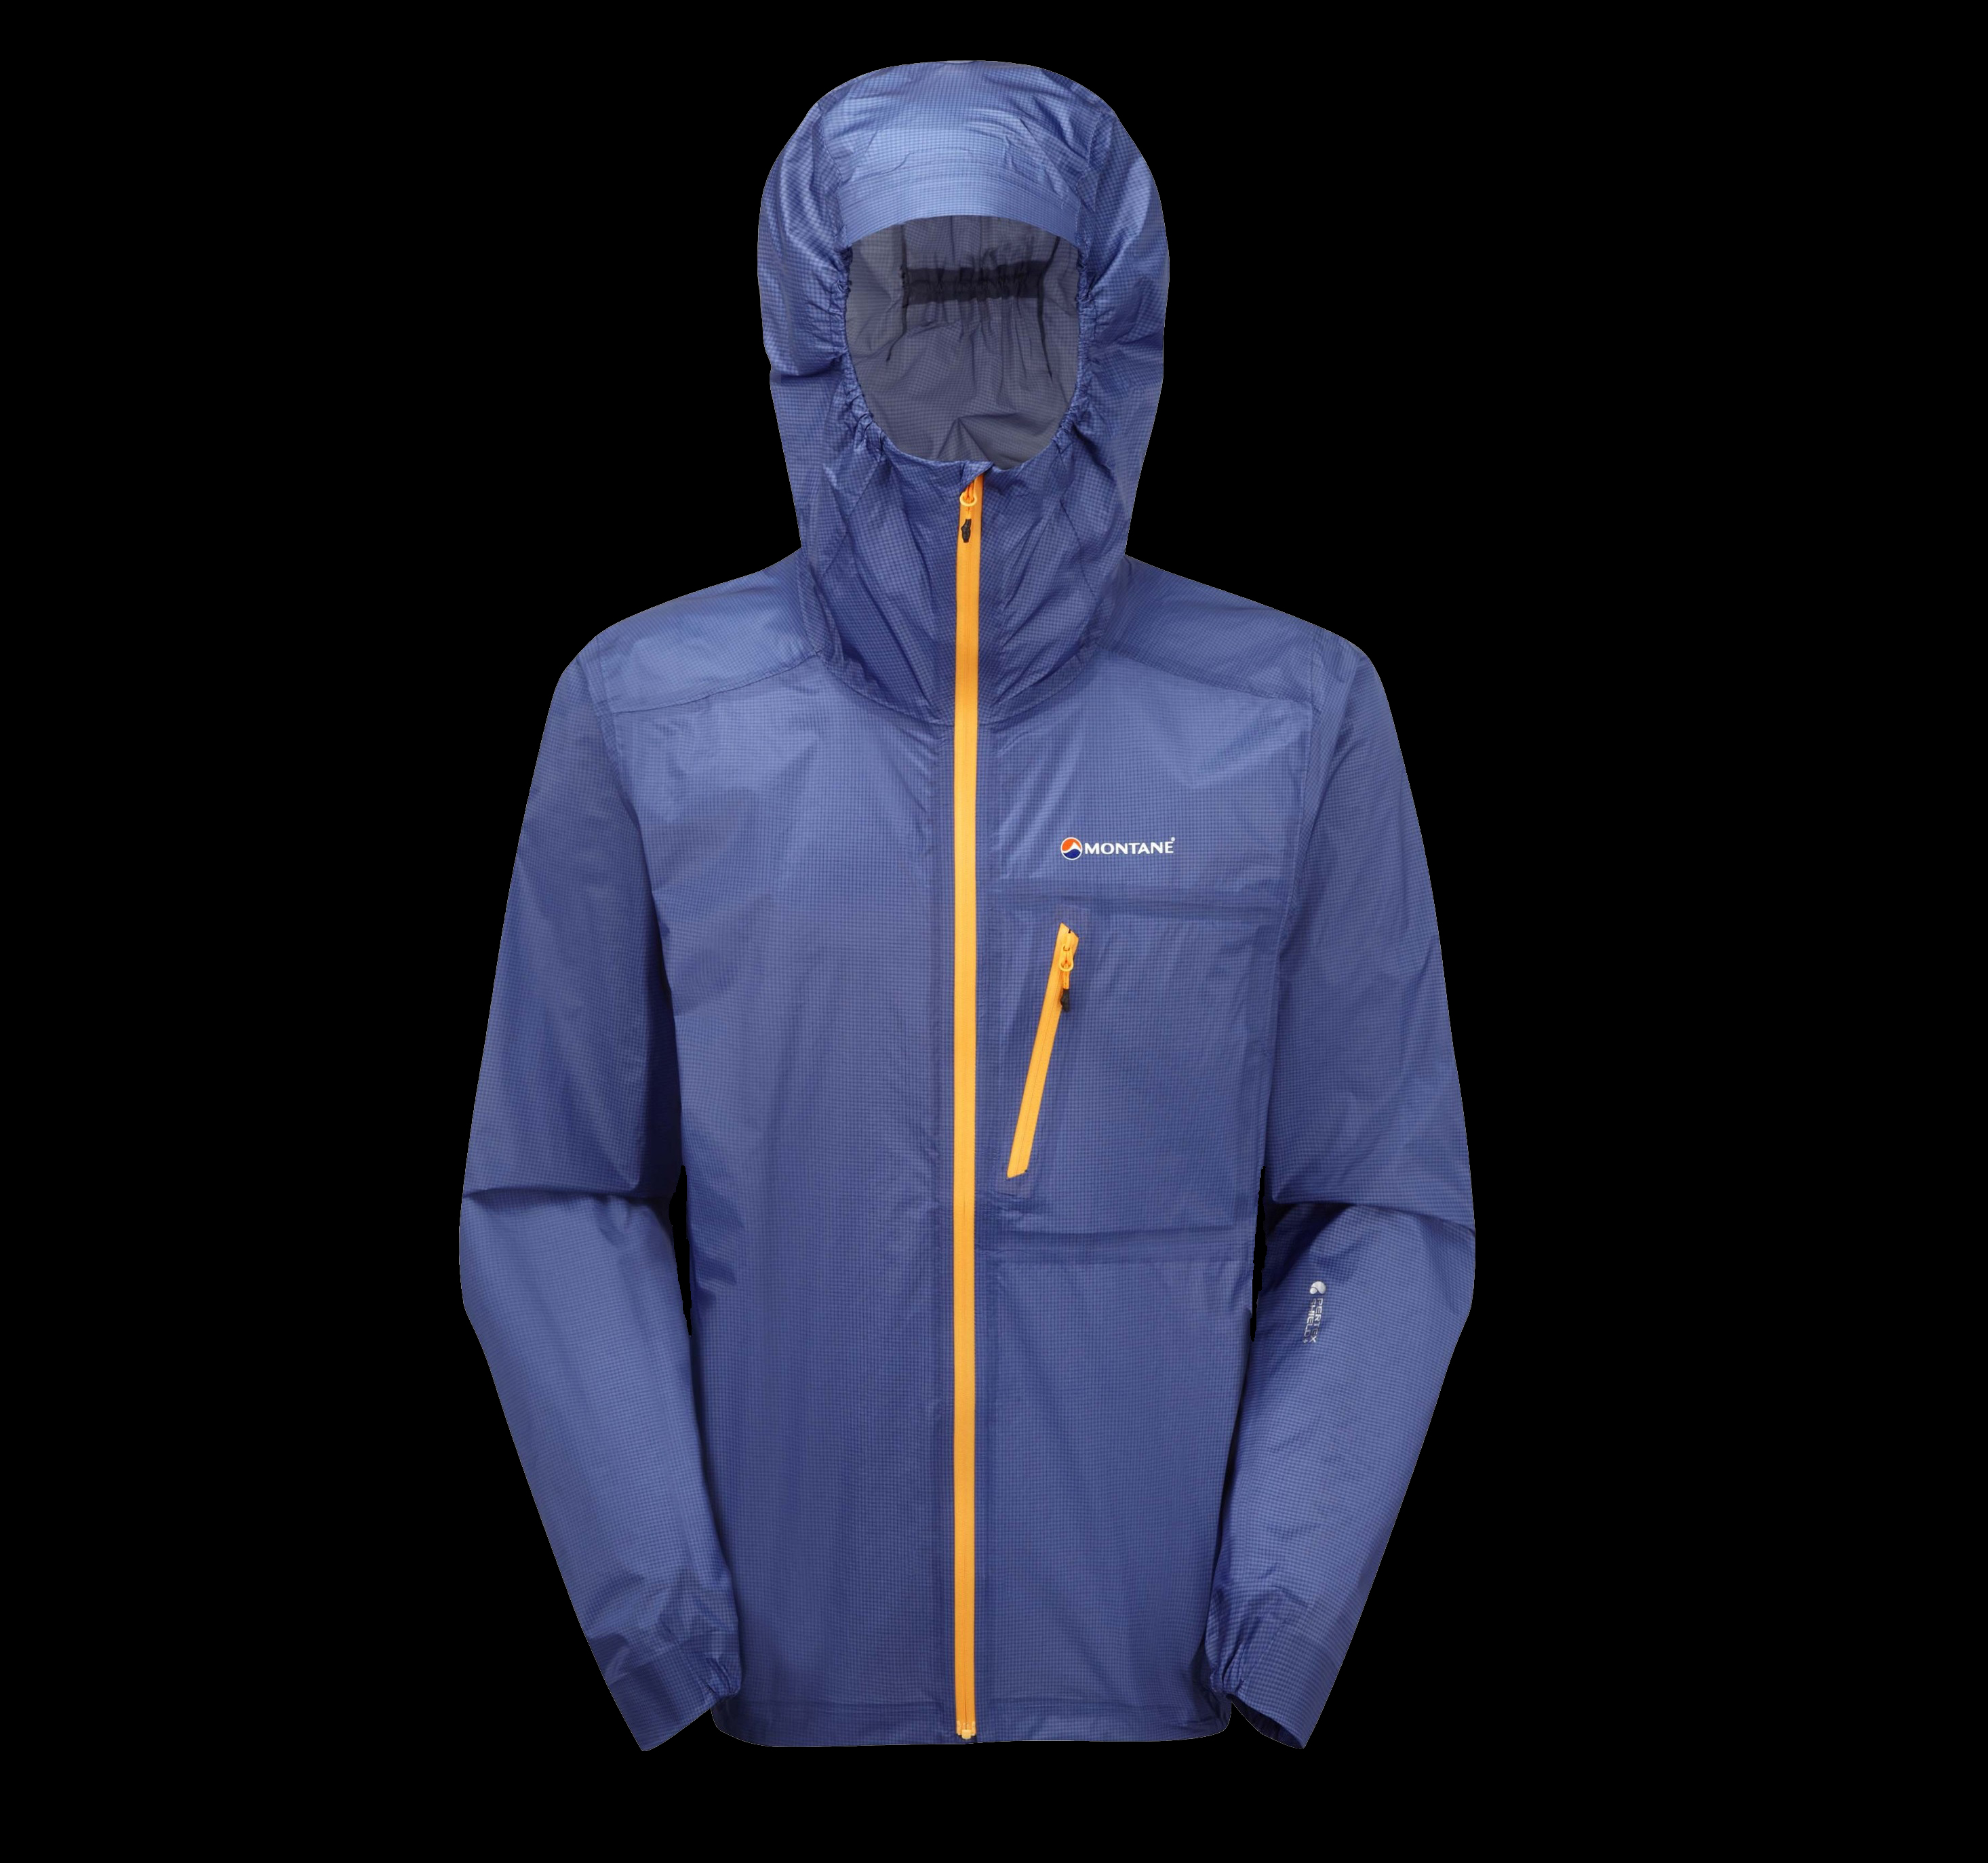 Feel the difference - Montane Minimus tried & tested